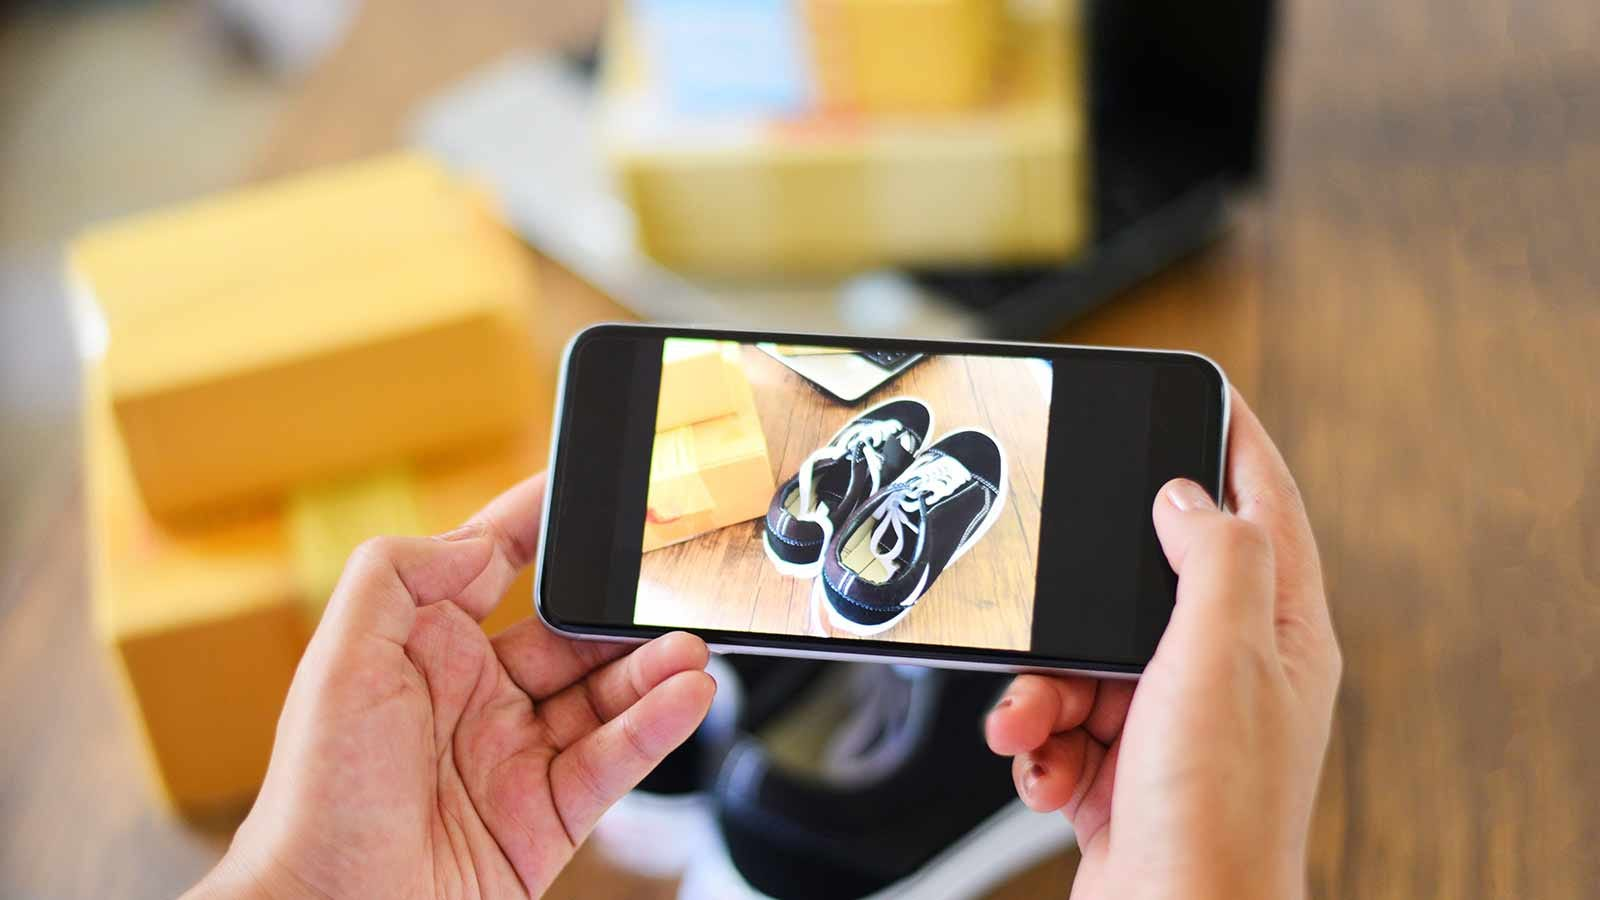 Person photographing a pair of sneakers with their cellphone.